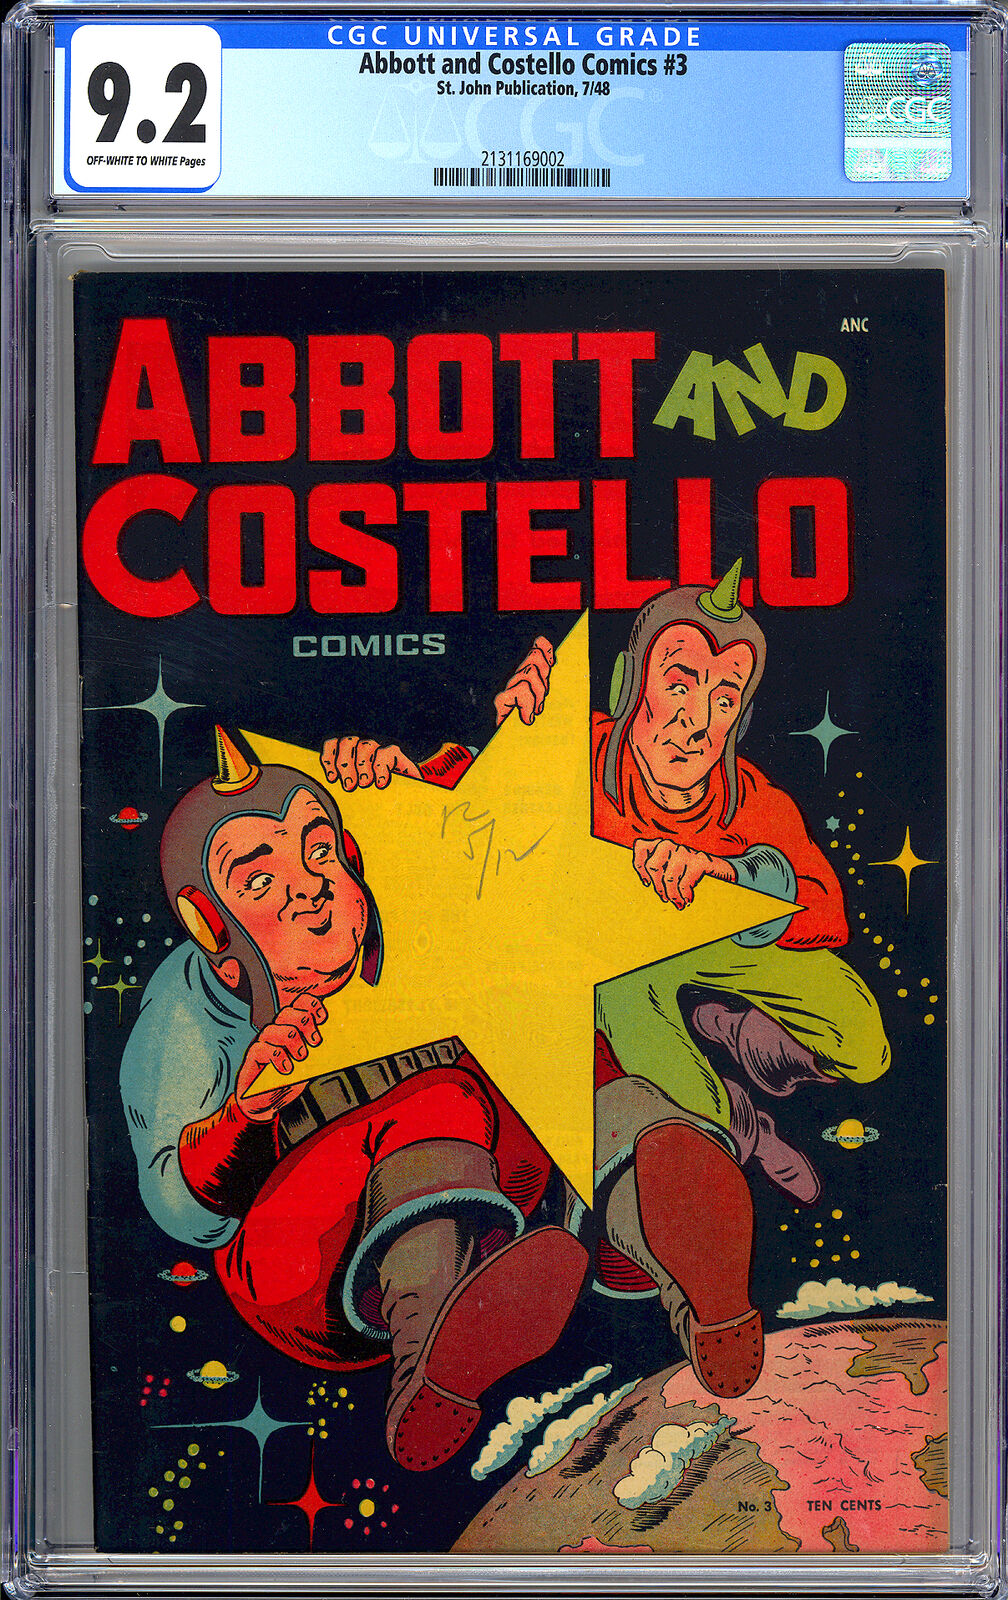 Abbott and Costello Comics 3 Highest Graded Copy PreCode St John 1948 CGC 92